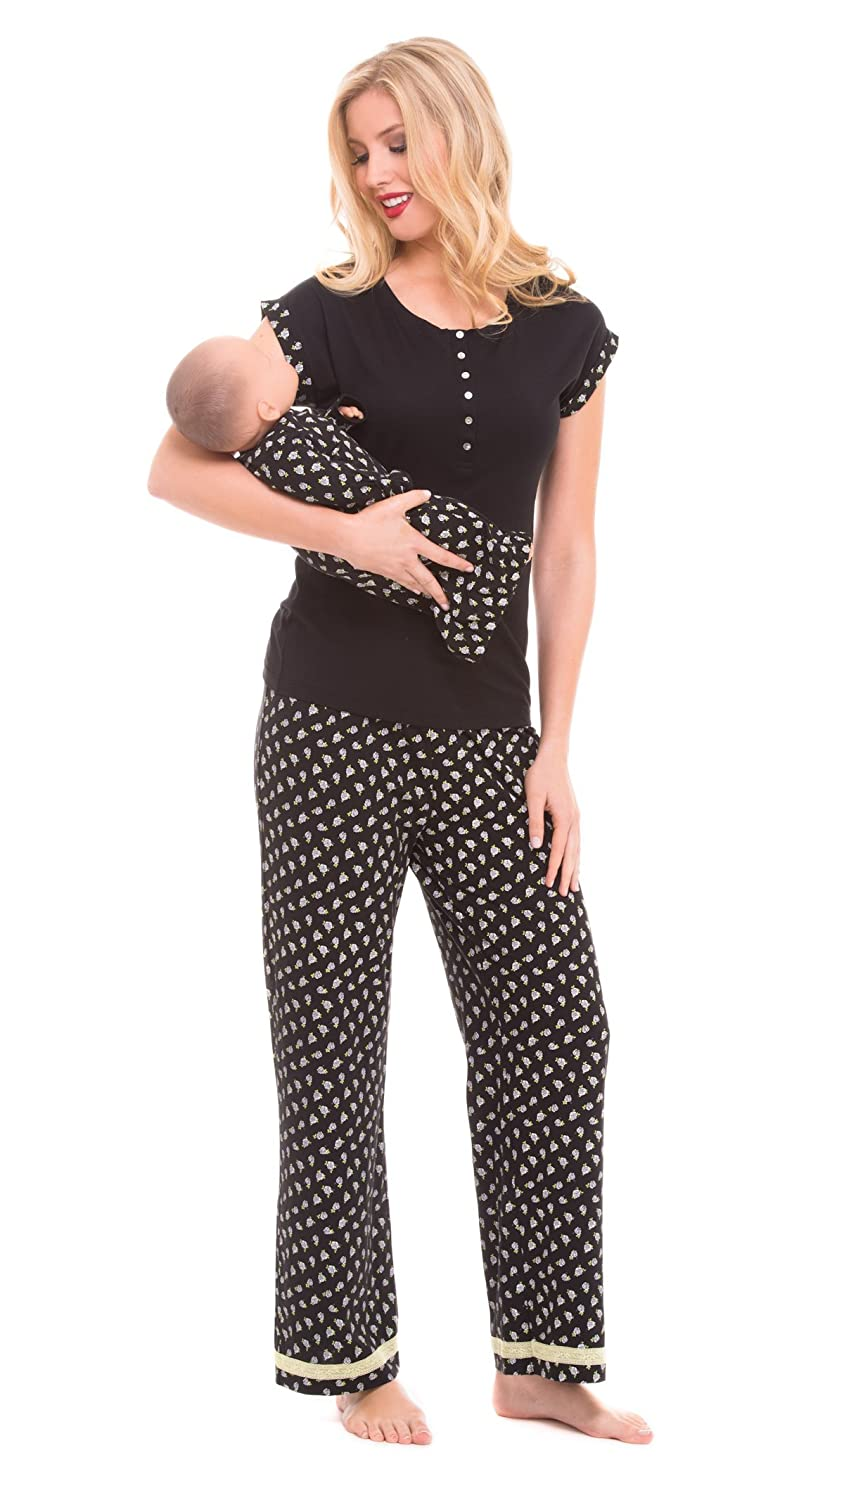 96612aac679a6 Olian Maternity Anne Black and White Floral Print Nursing Pajama Set at  Amazon Women s Clothing store